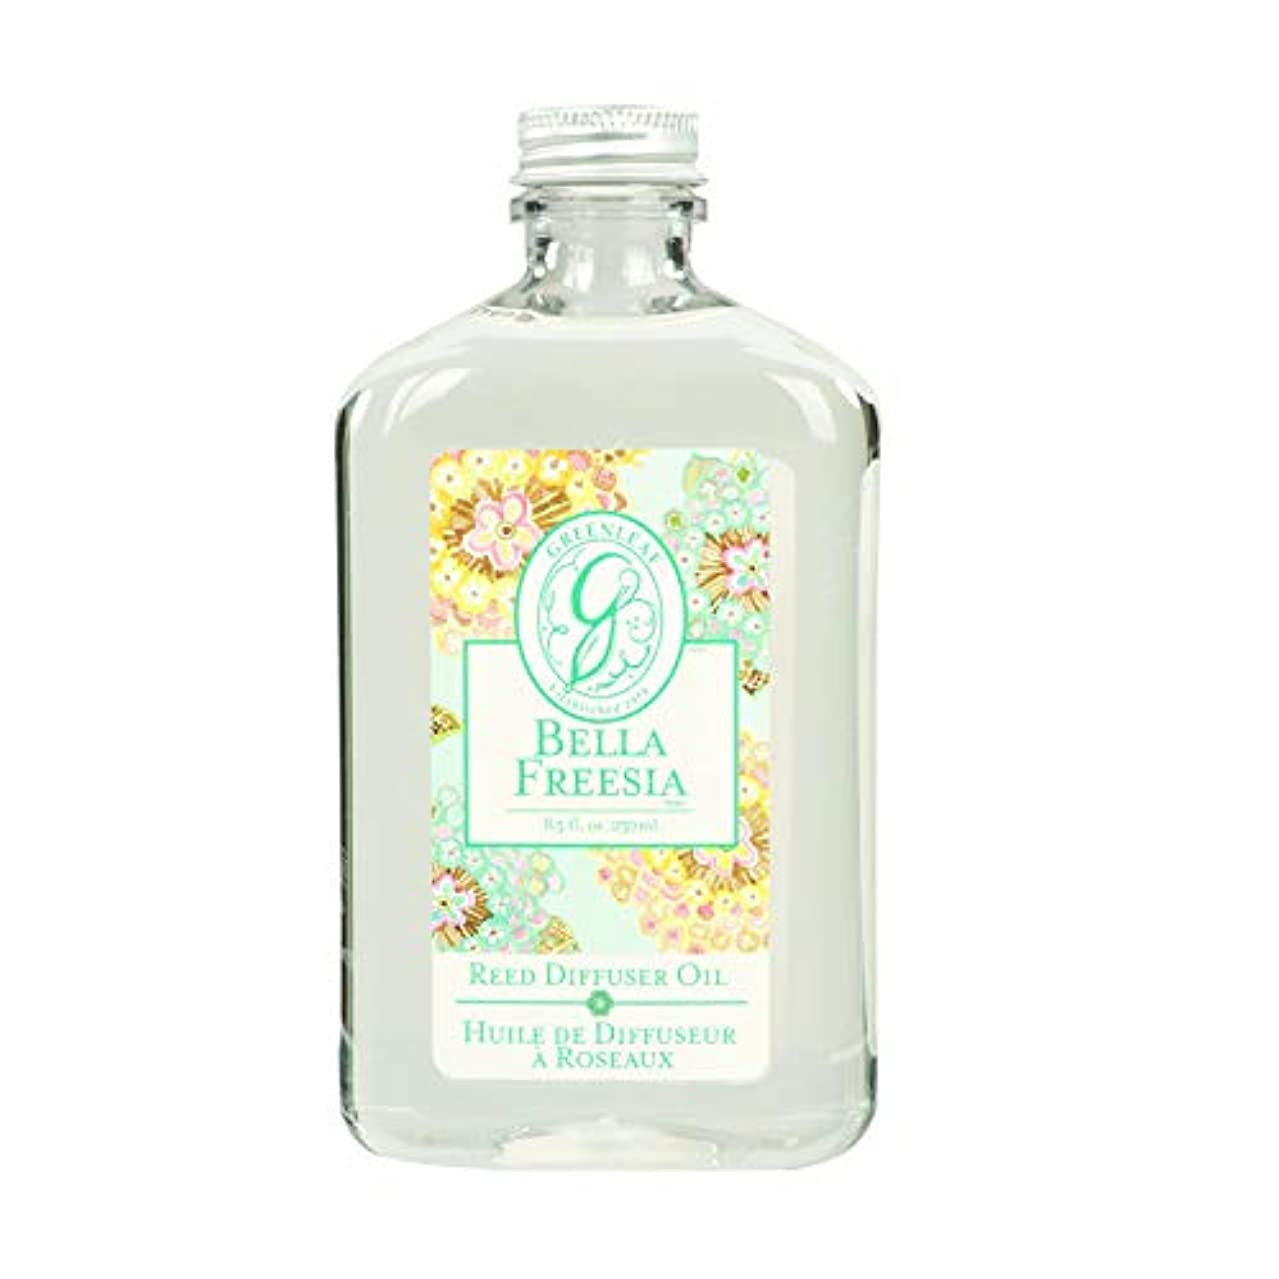 全能無秩序足GREEN LEAF REED DIFFUSER OIL REFILL BELLA FREESIA